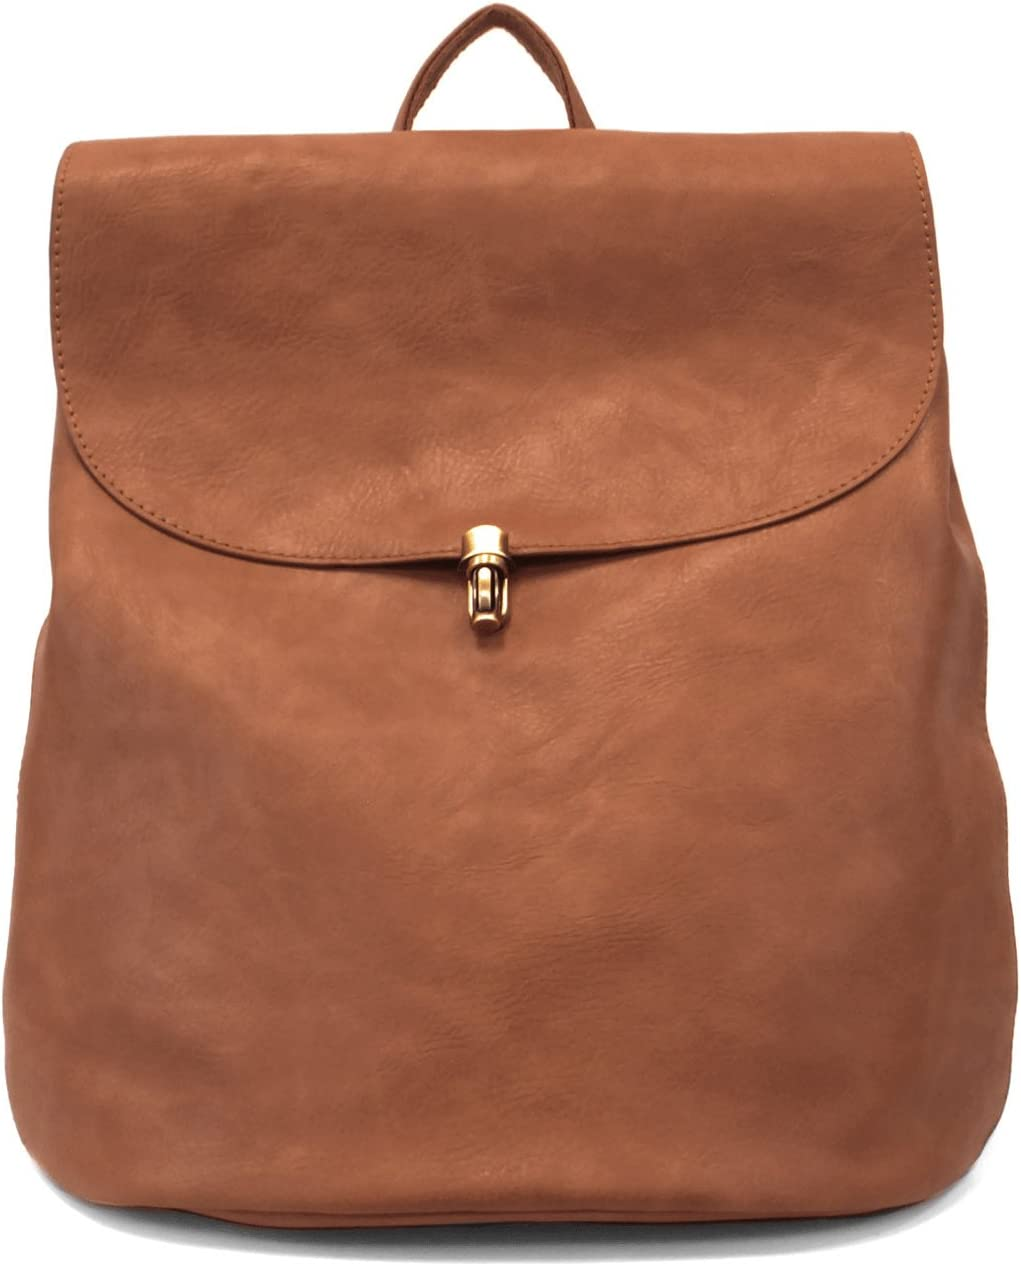 Joy Susan Vegan Leather Colette Backpack Saddle